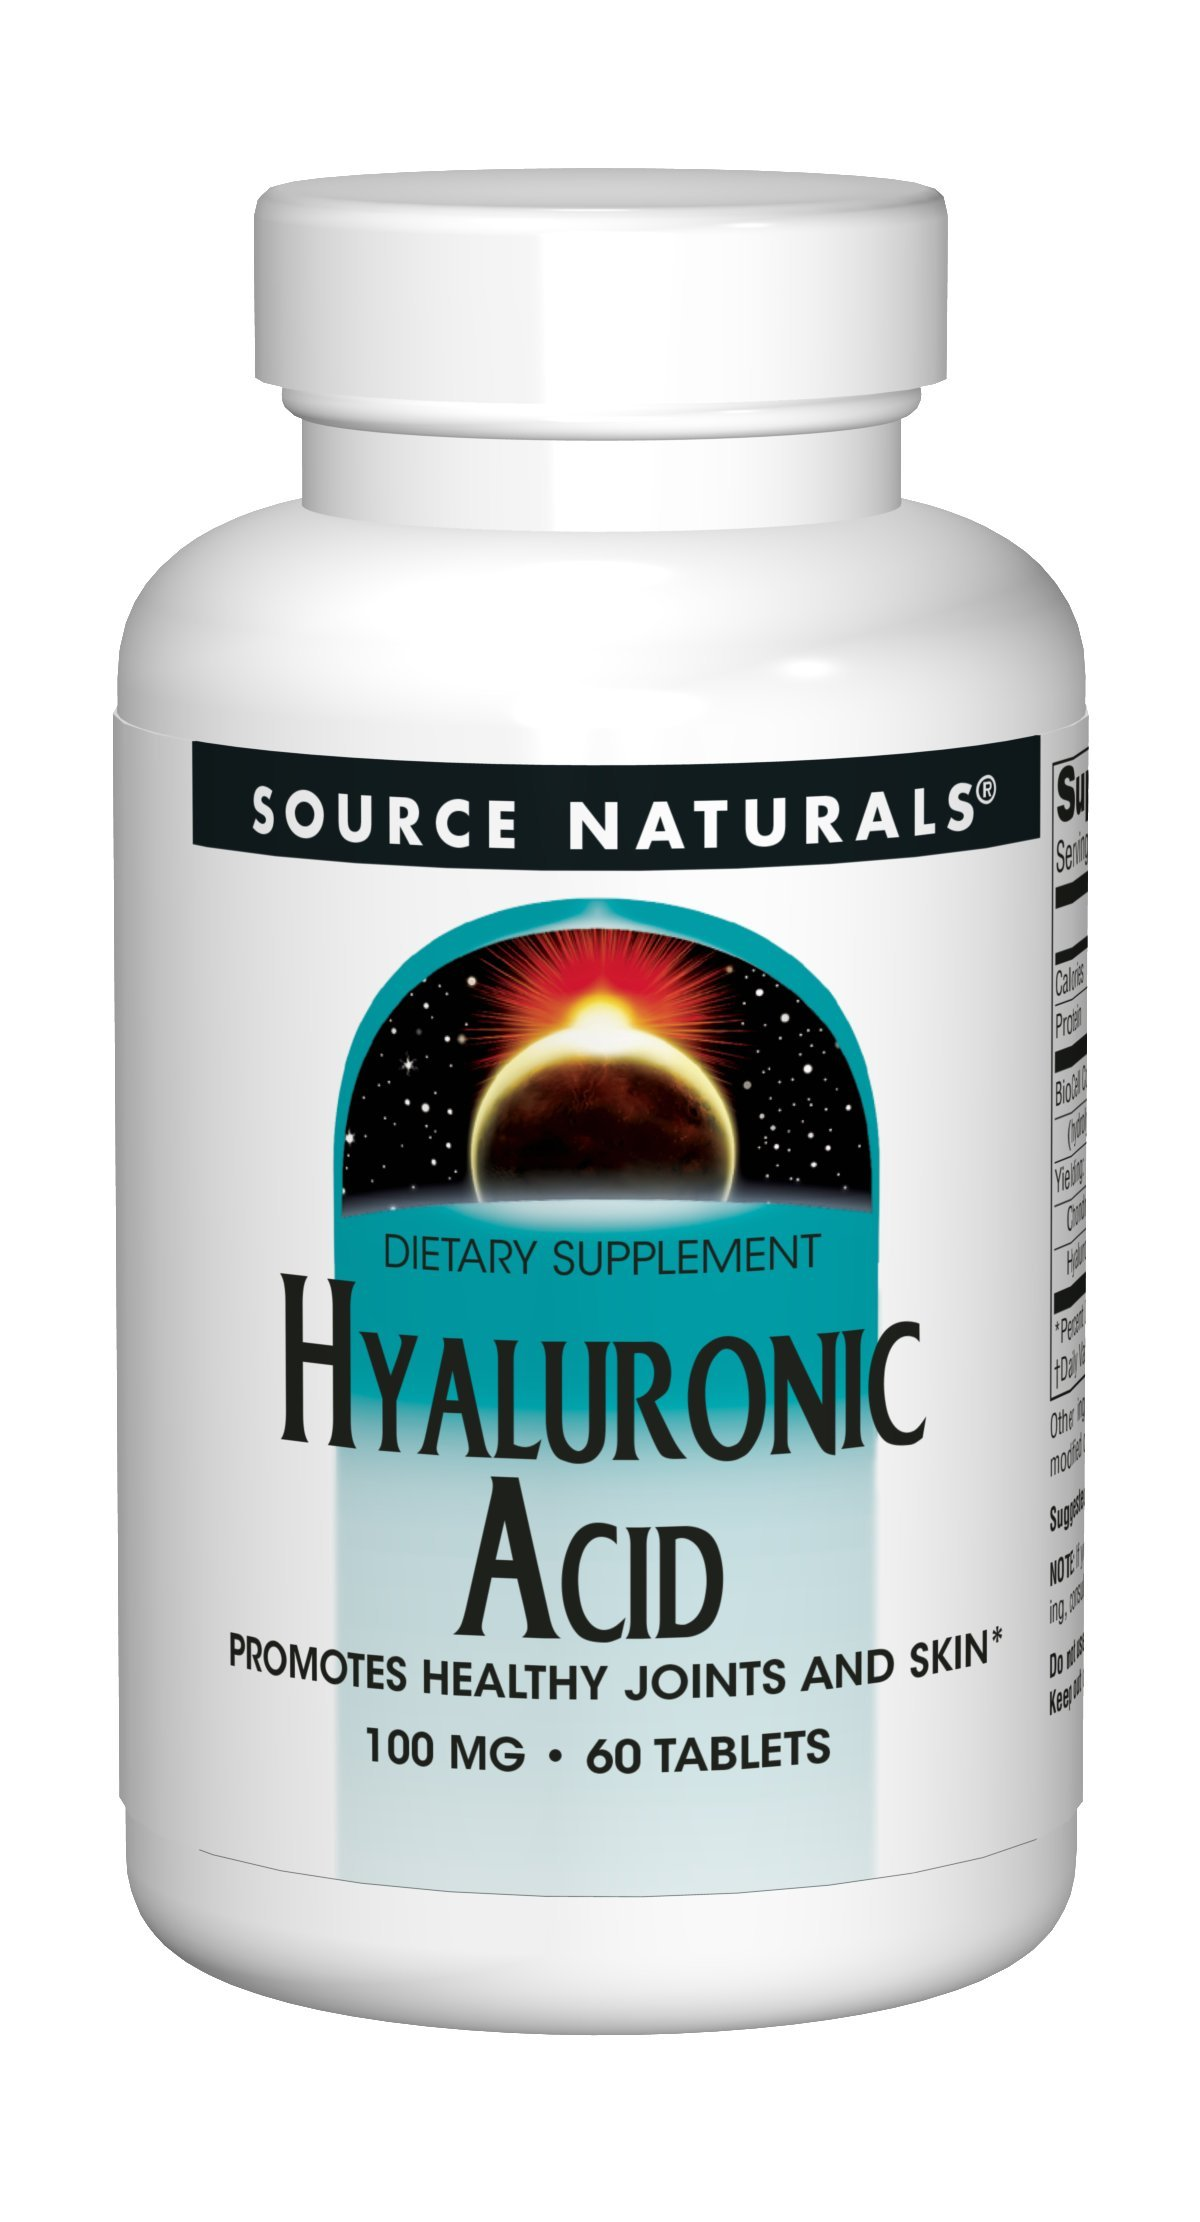 Source Naturals Hyaluronic Acid 100mg - 60 Tablets